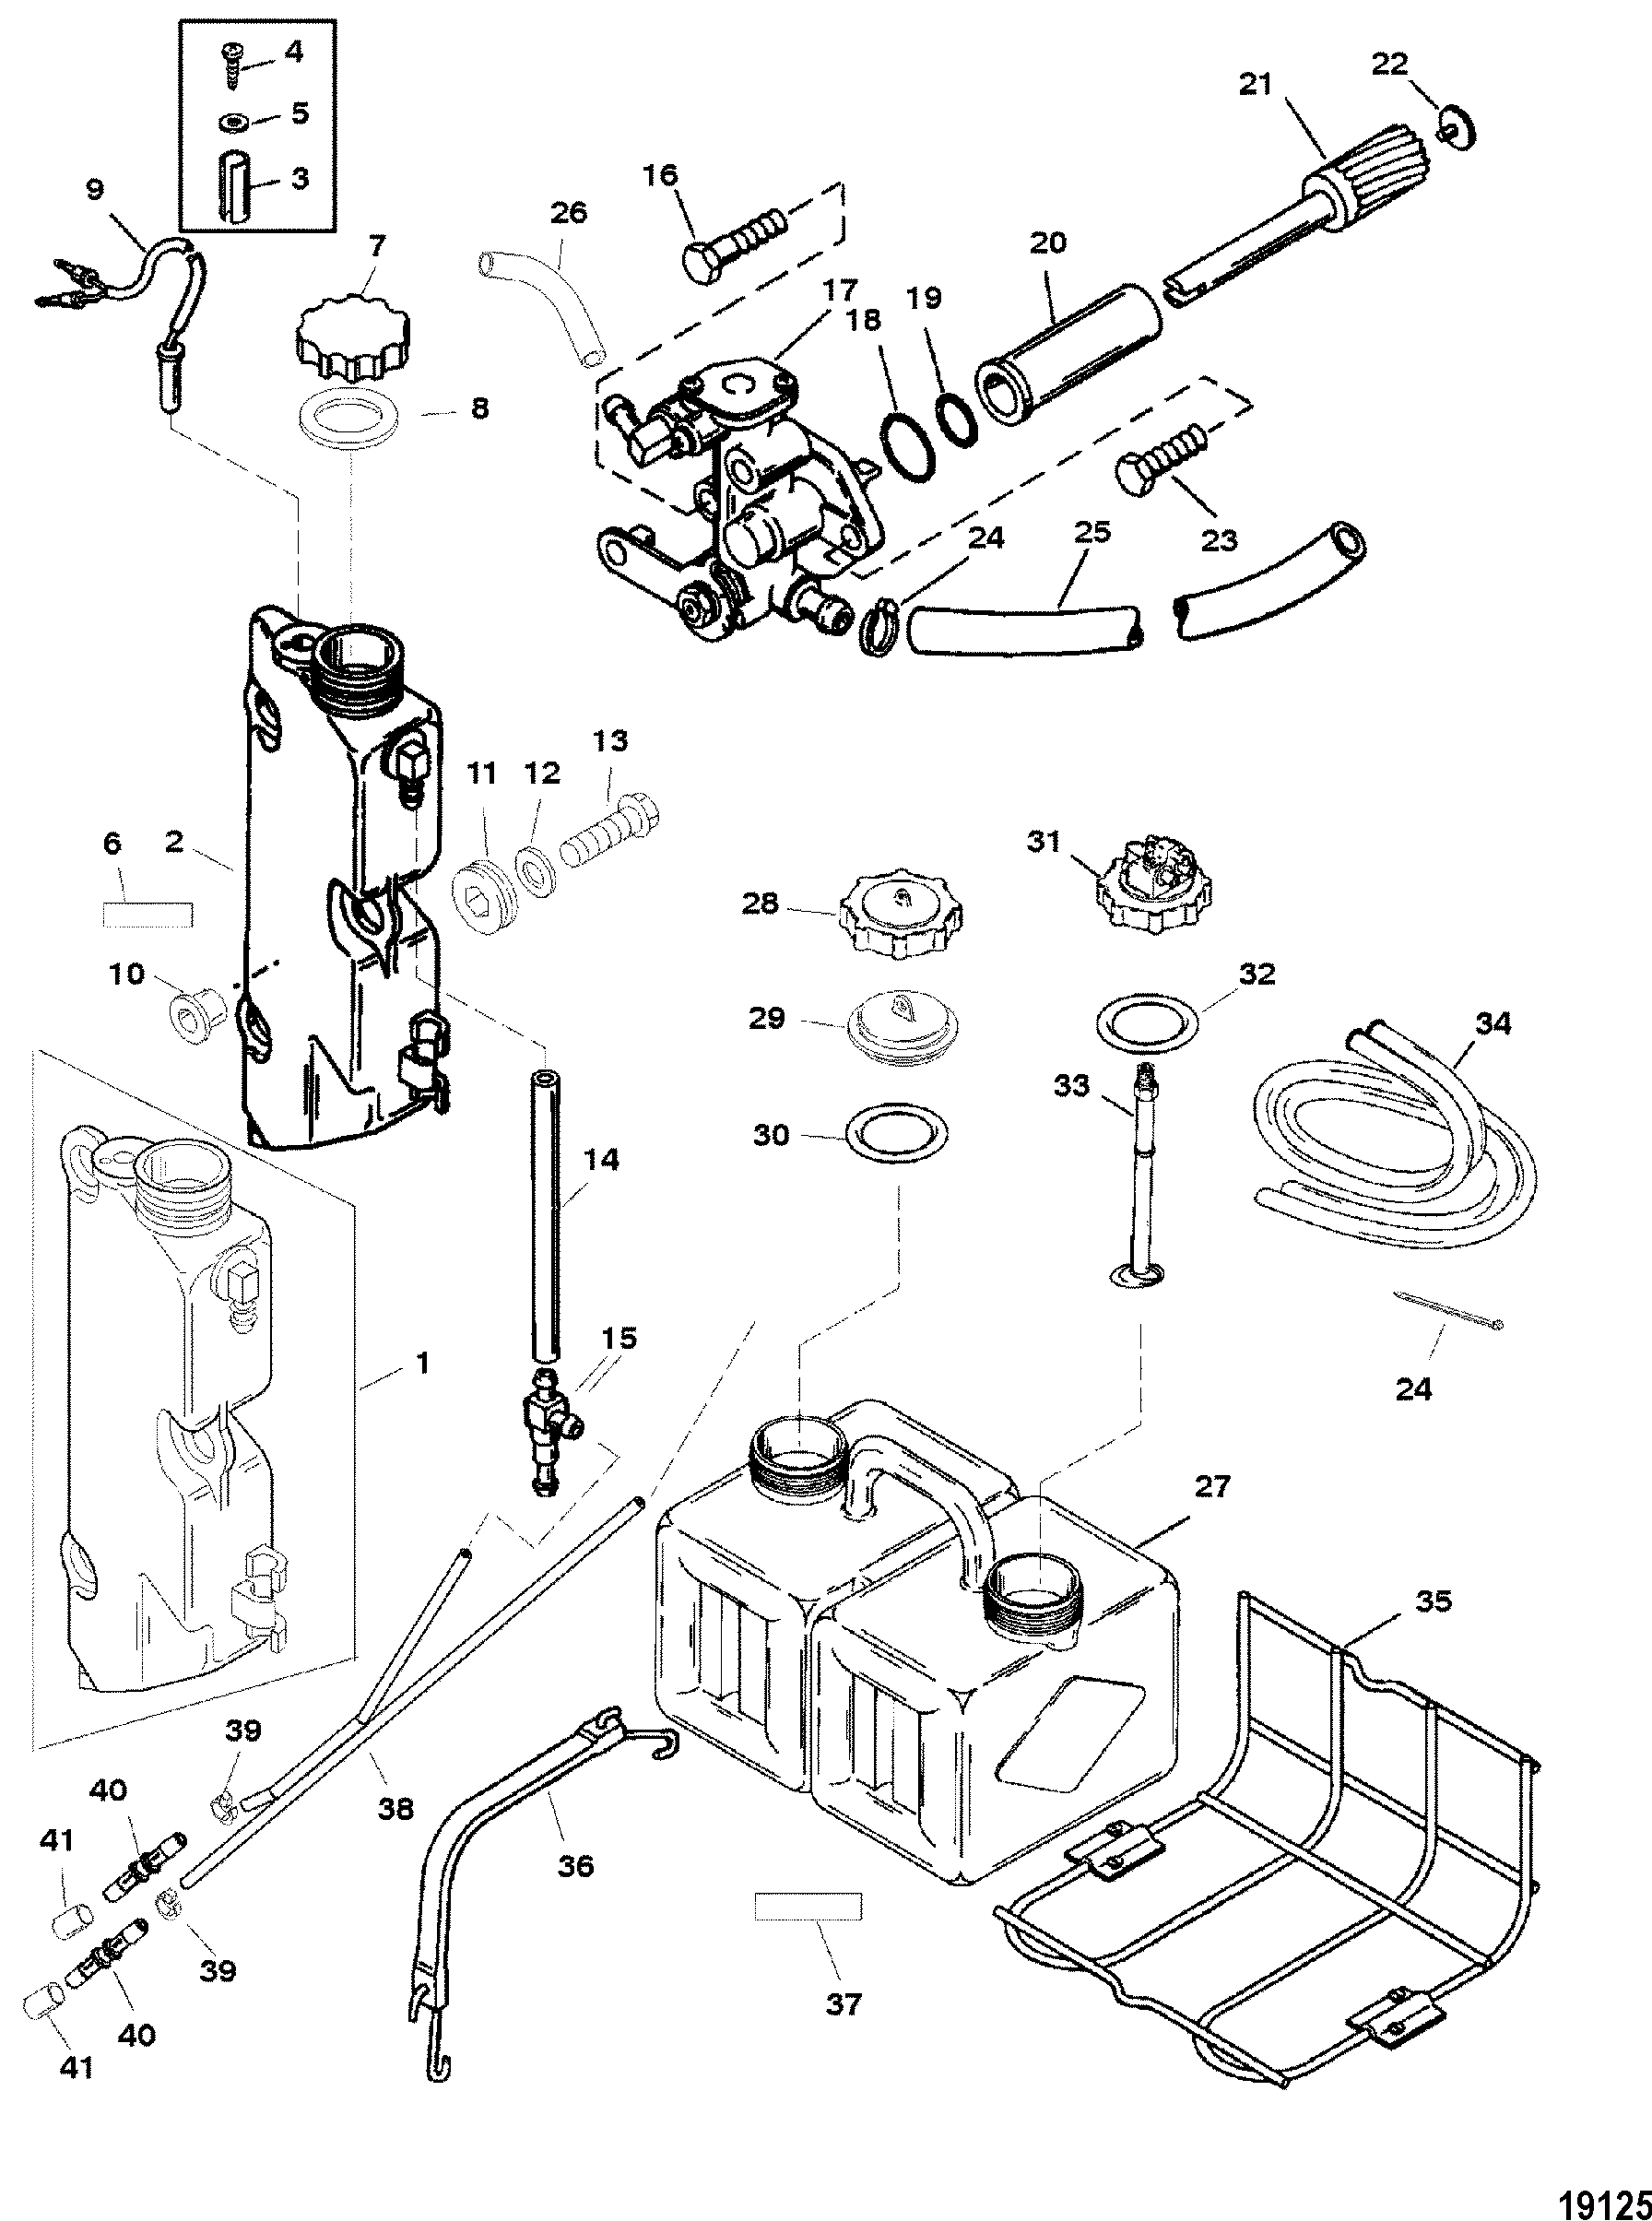 mercury outboard wiring diagram schematic 2000 vw jetta fuse oil injection components for mariner / 225/250 3.0l efi